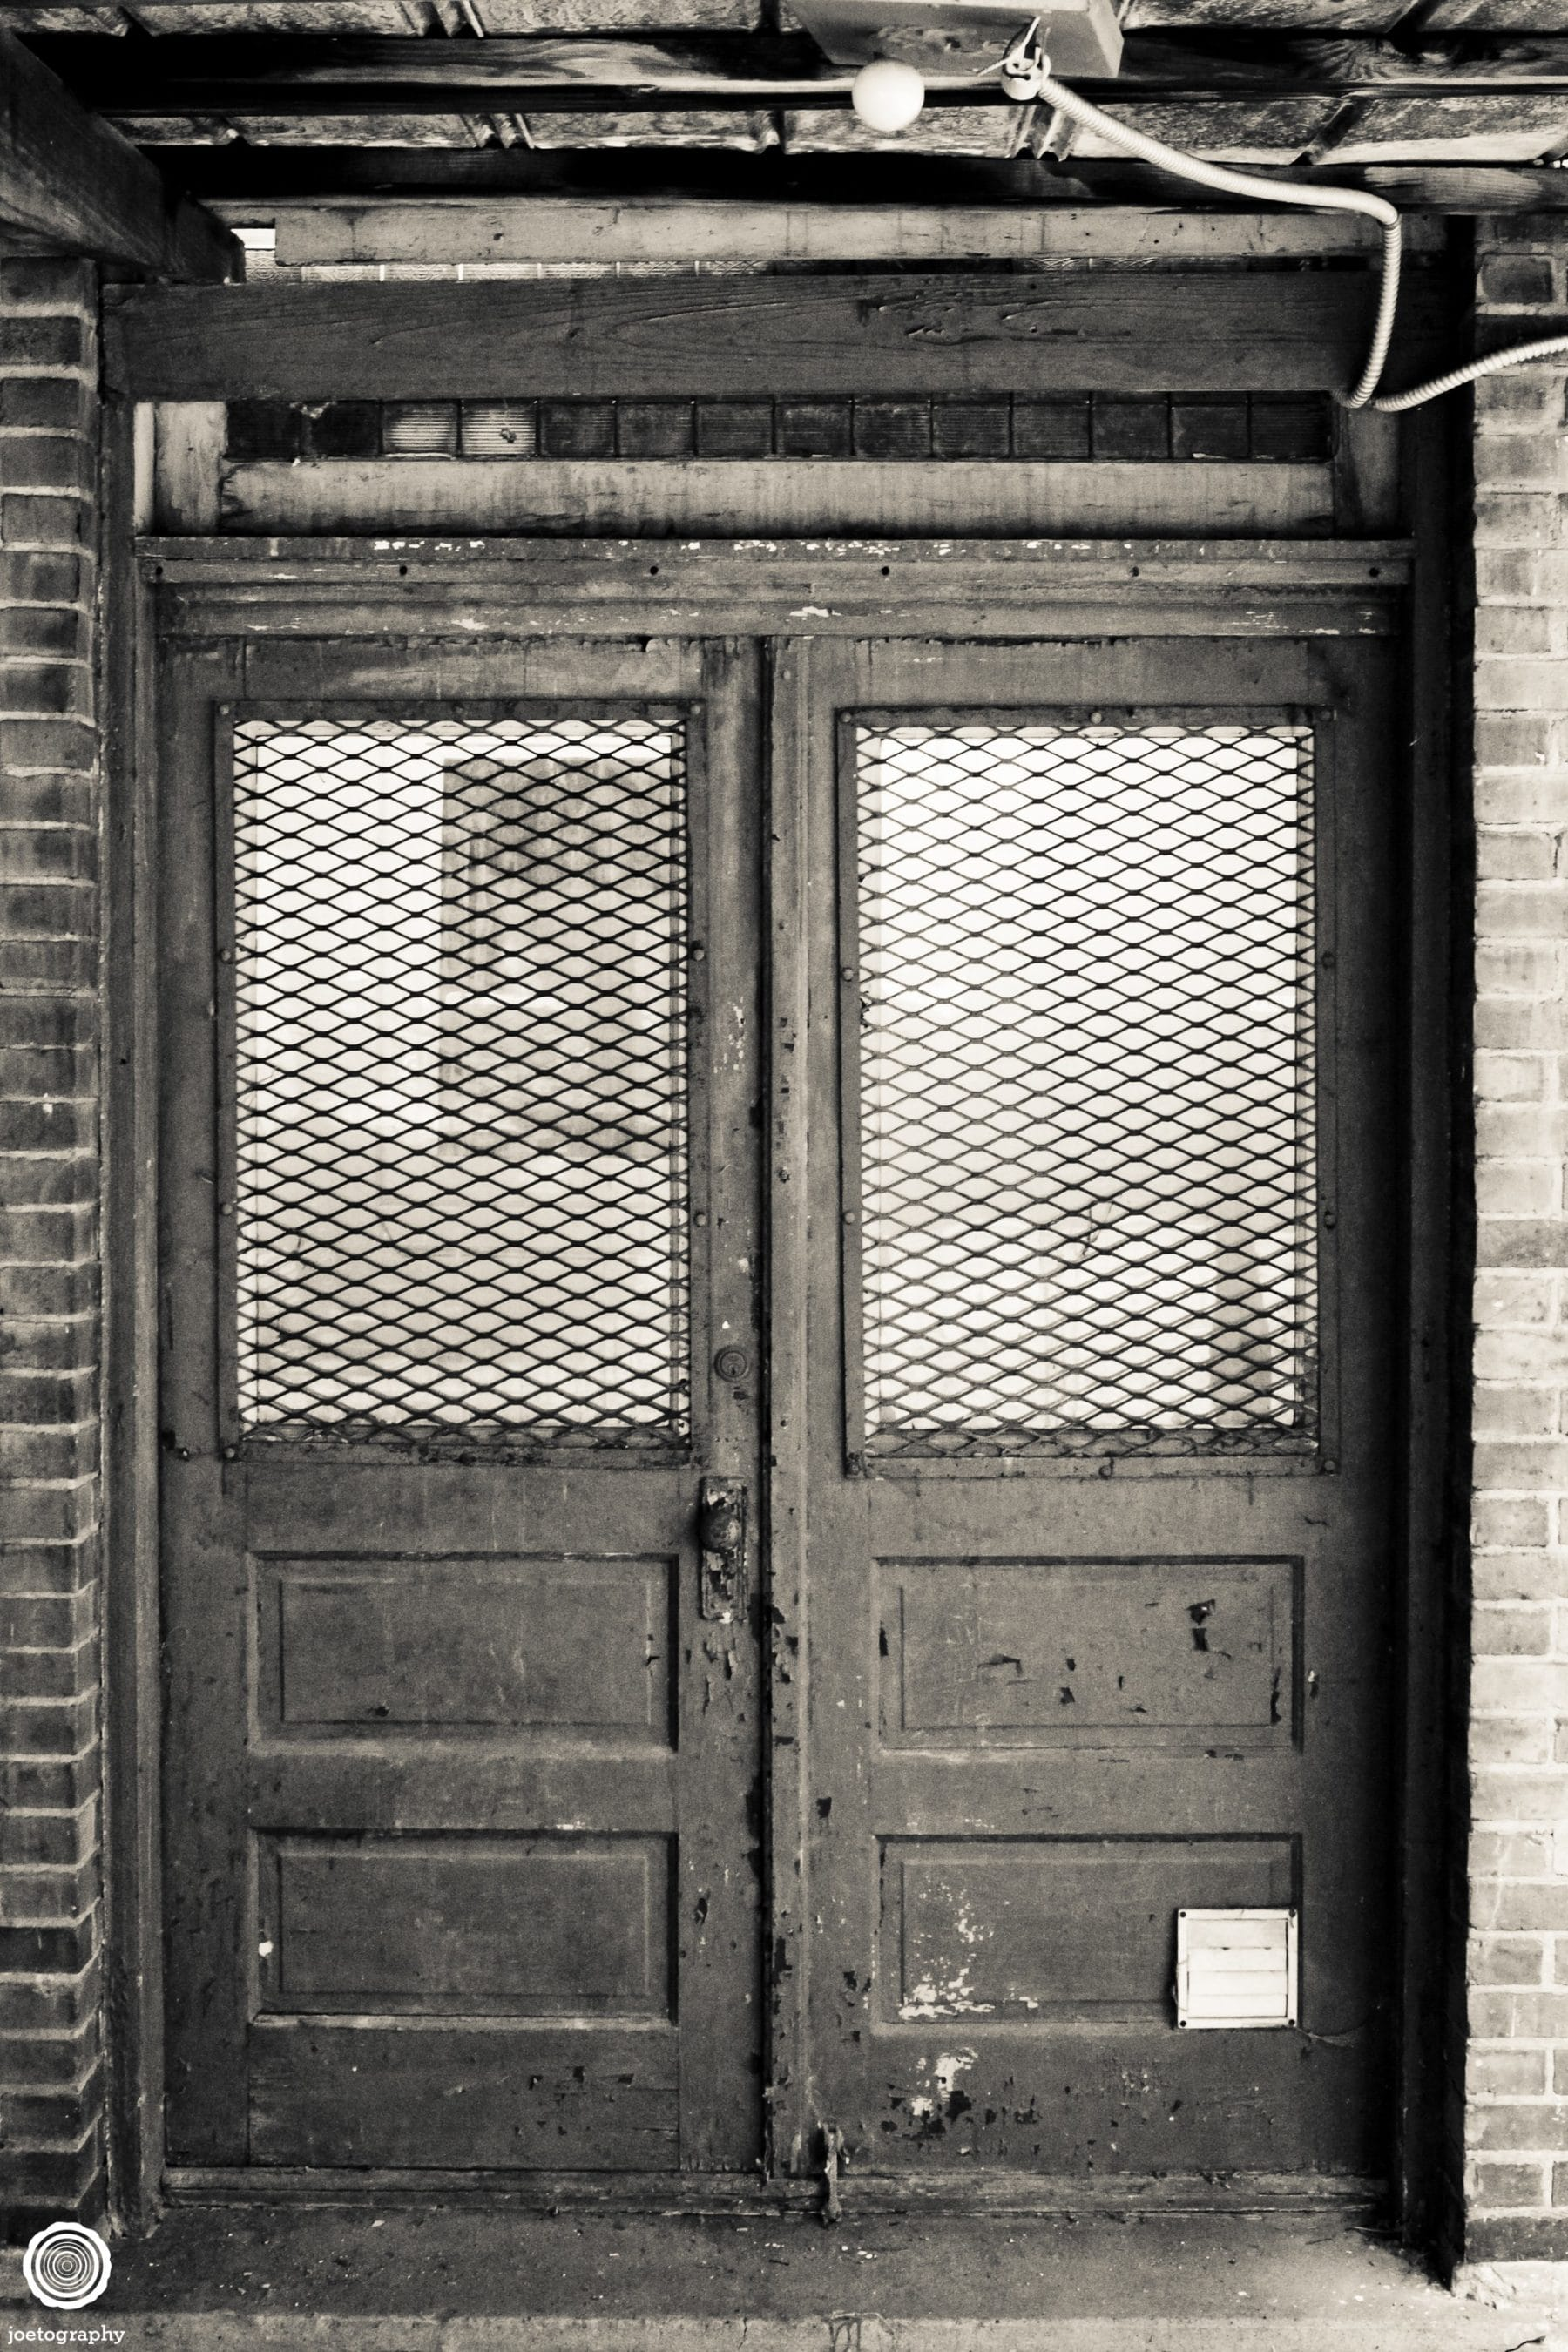 Alleyways-Architecture-Photography-Columbus-Indiana-10